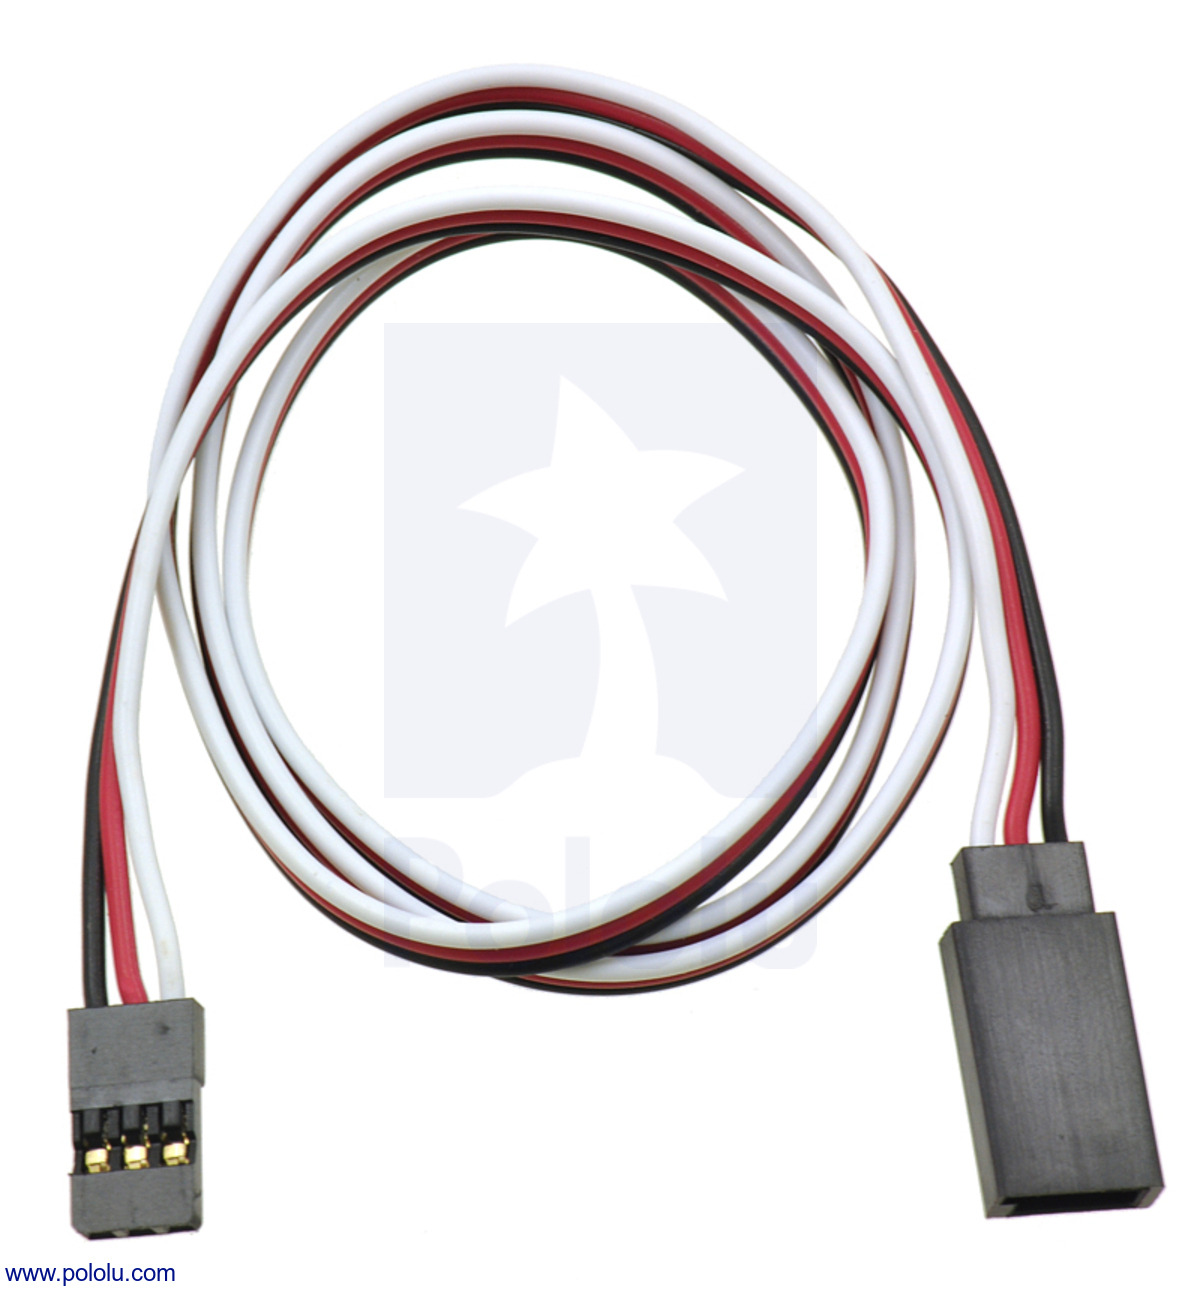 hight resolution of servo extension cable 24 male female